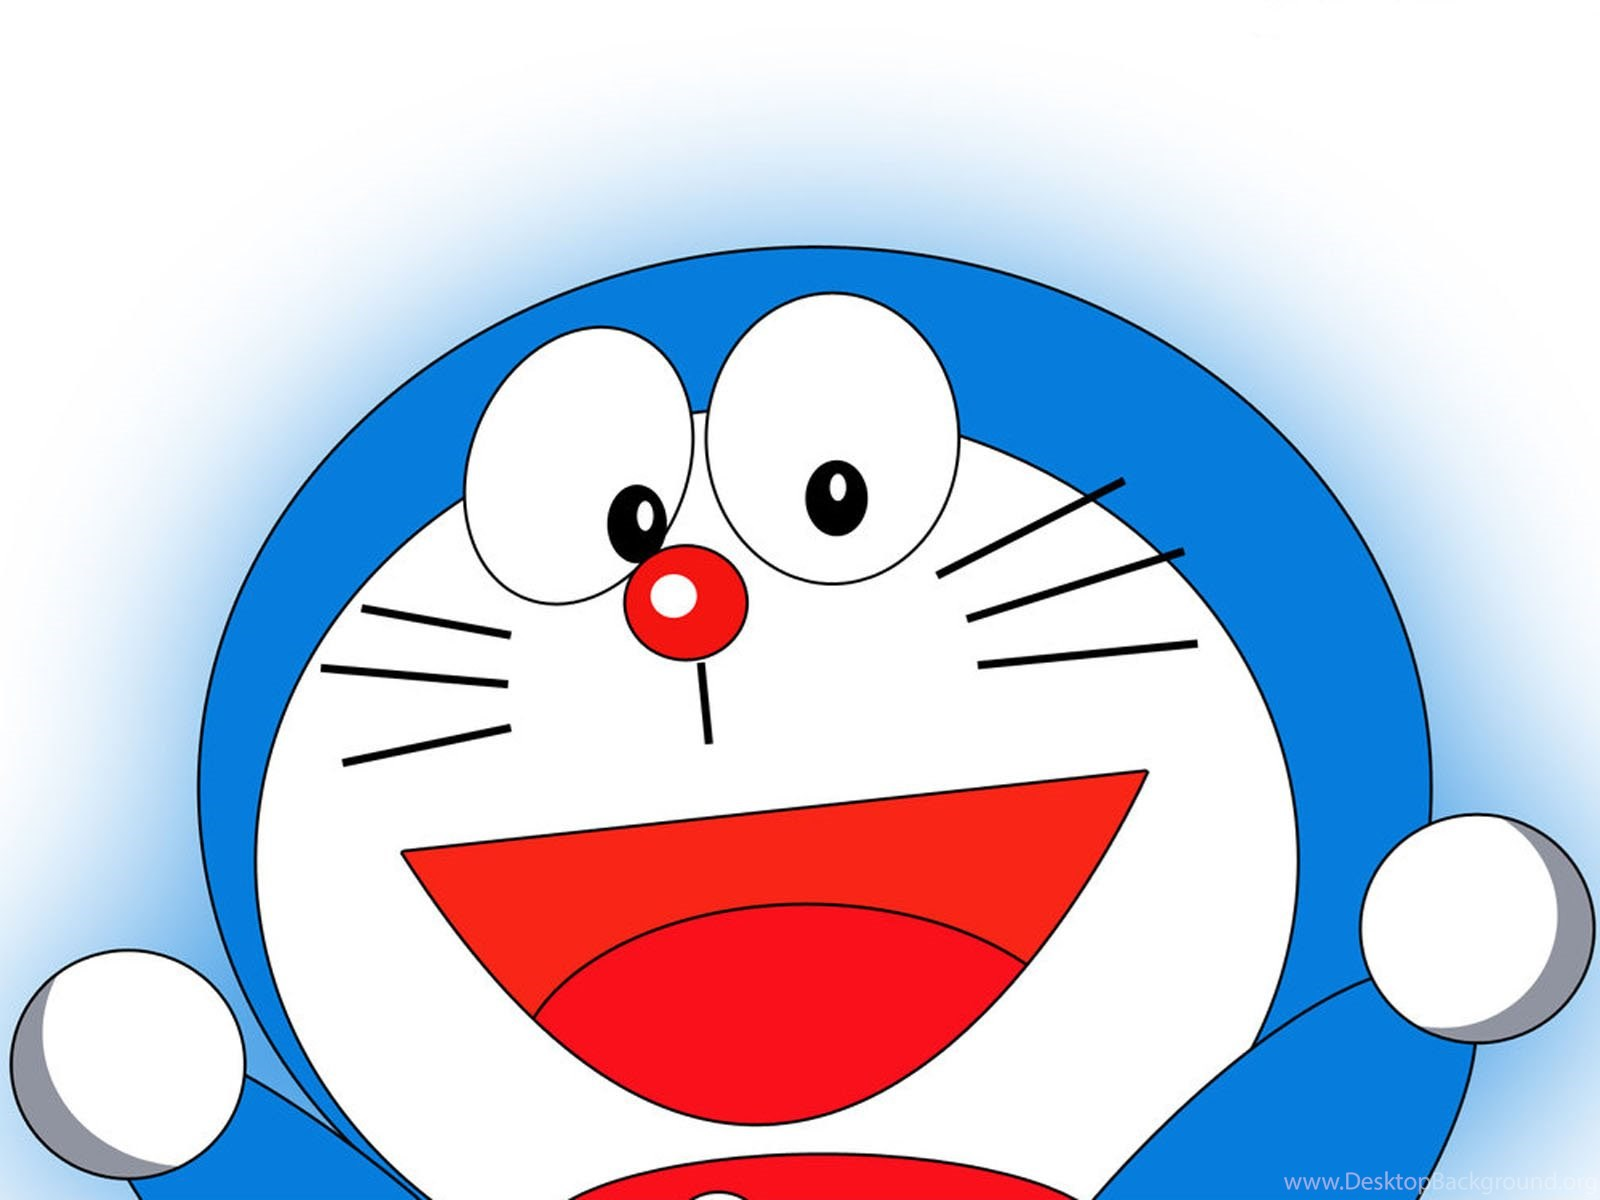 785817 doraemon high resolution wallpapers download doraemon images